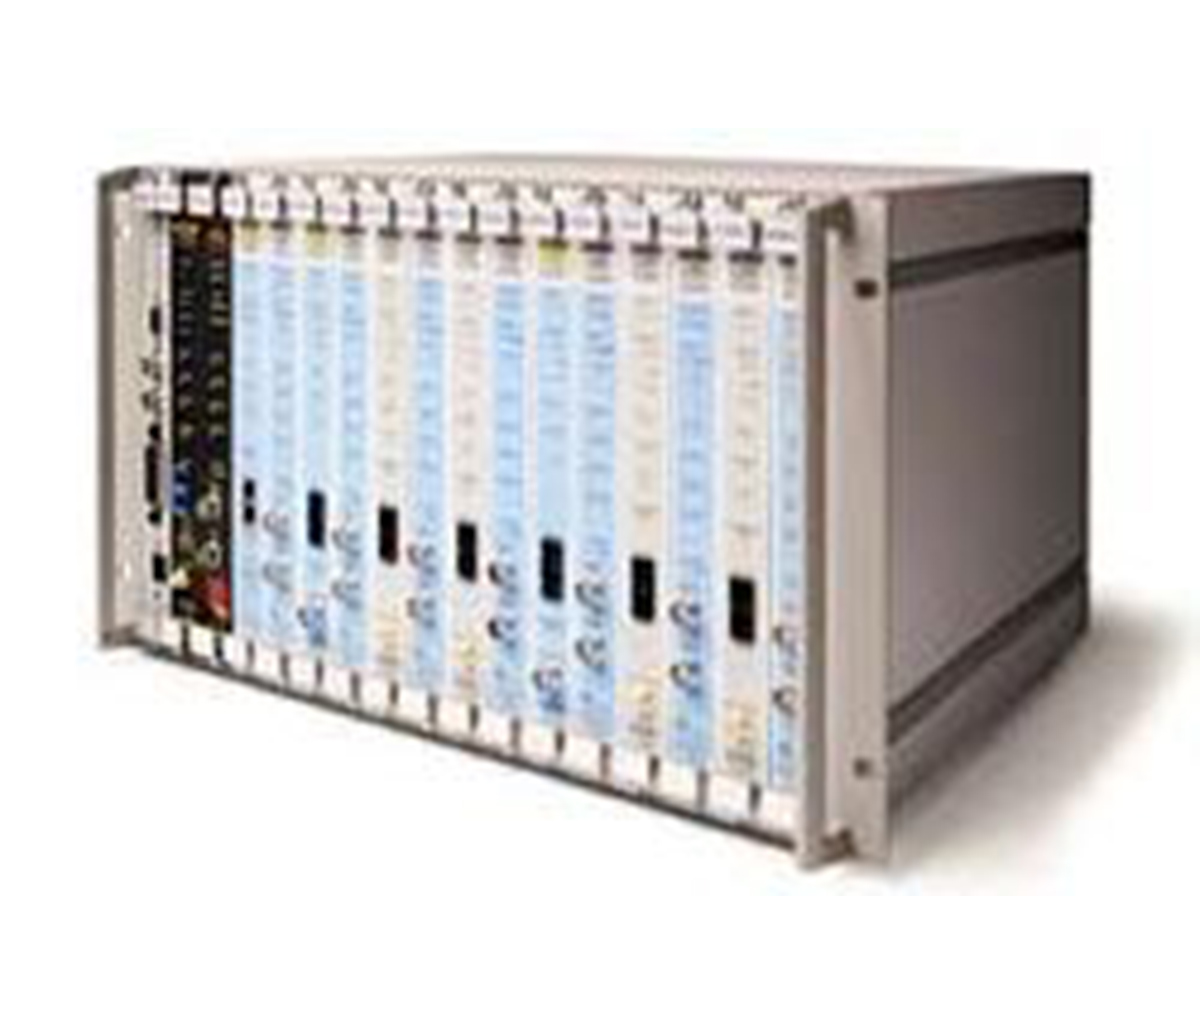 Spirent - AX4000 Broadband Test System